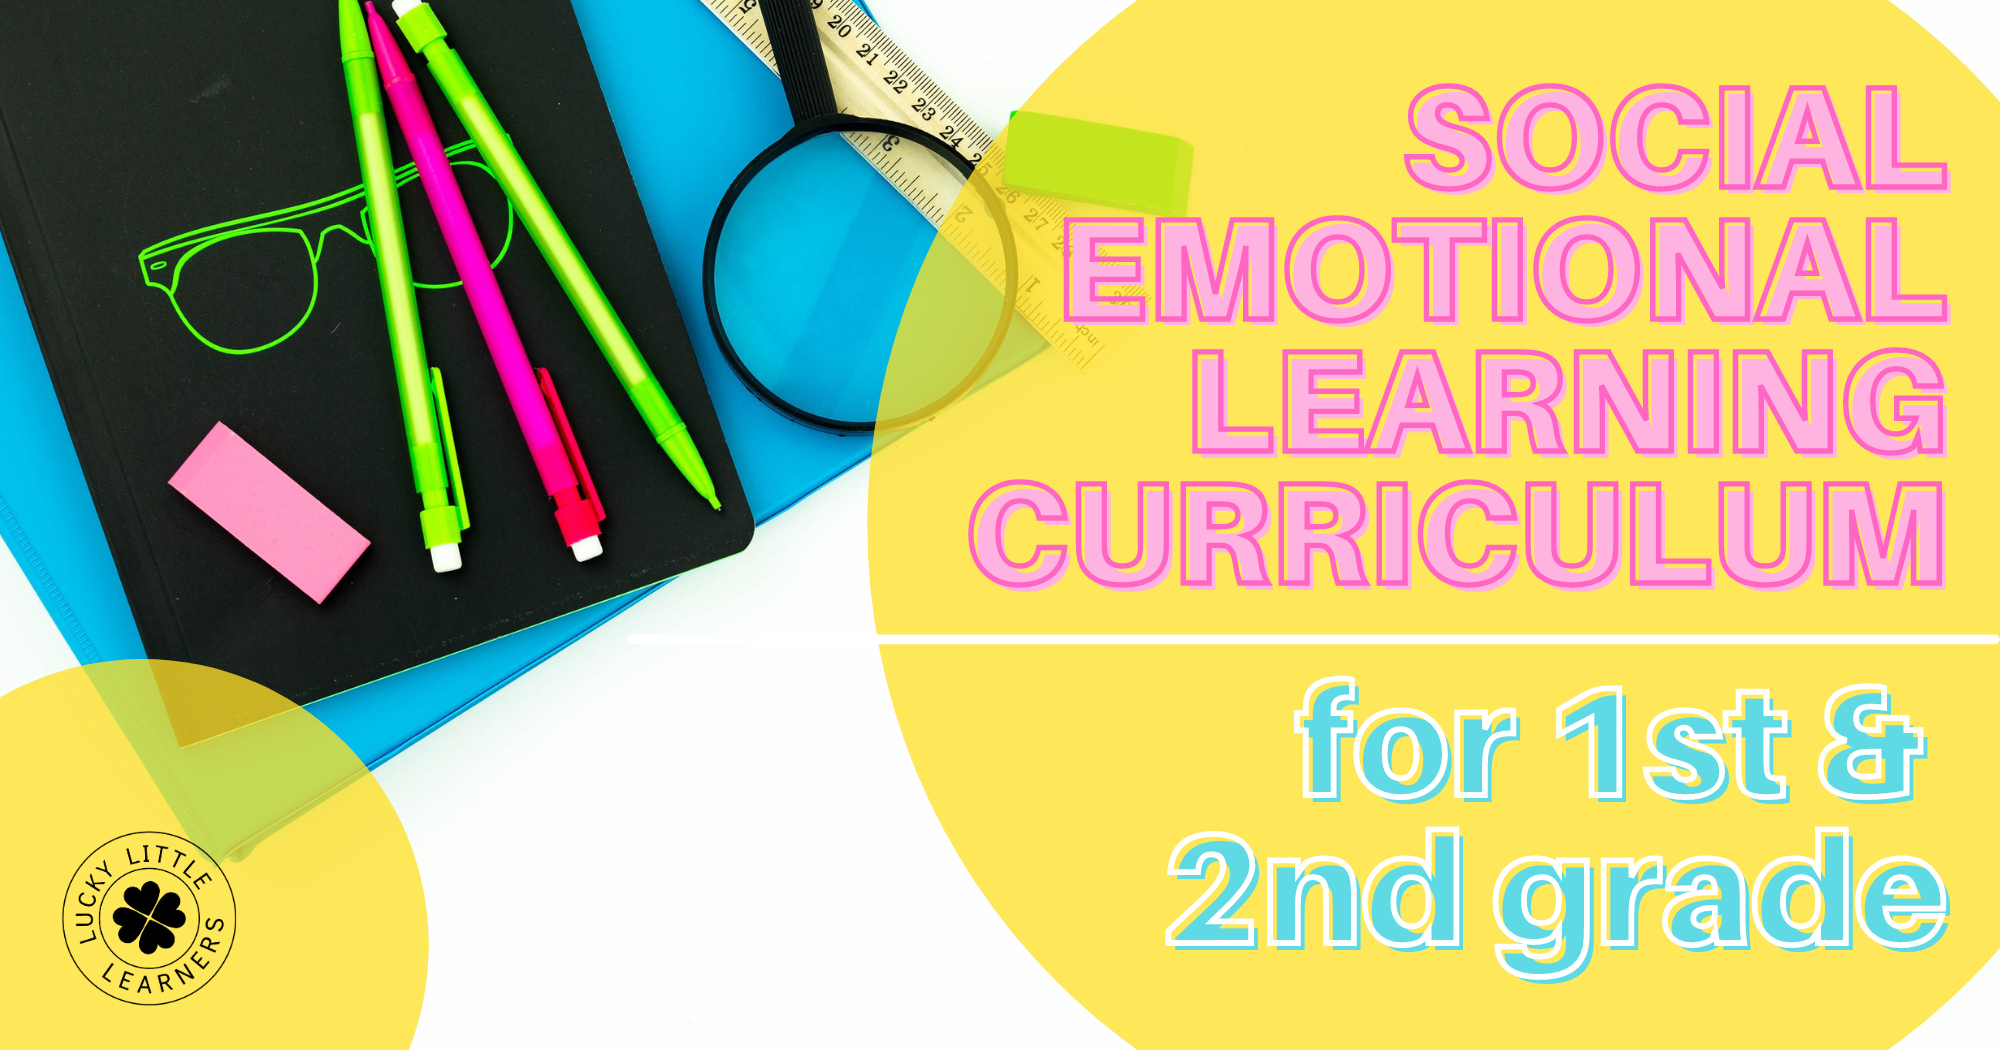 social-emotional-learning-curriculum-for-1st-and-2nd-grade